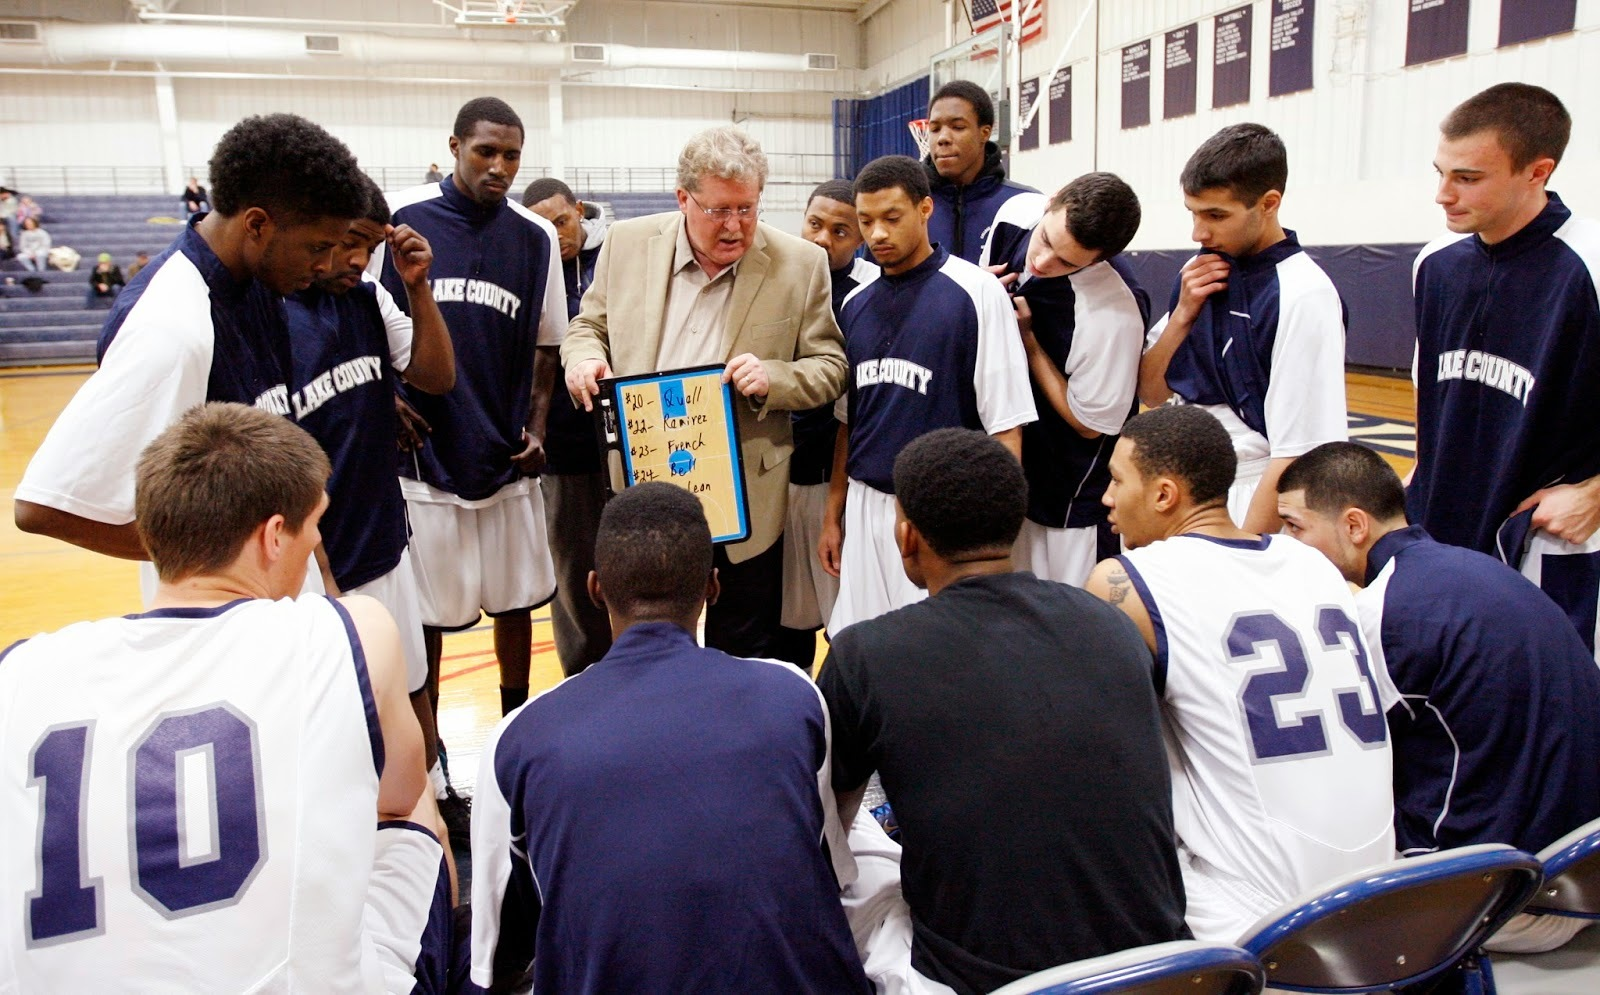 College of Lake County men's basketball coach Chuck Ramsey gives instruction to the team during a game.